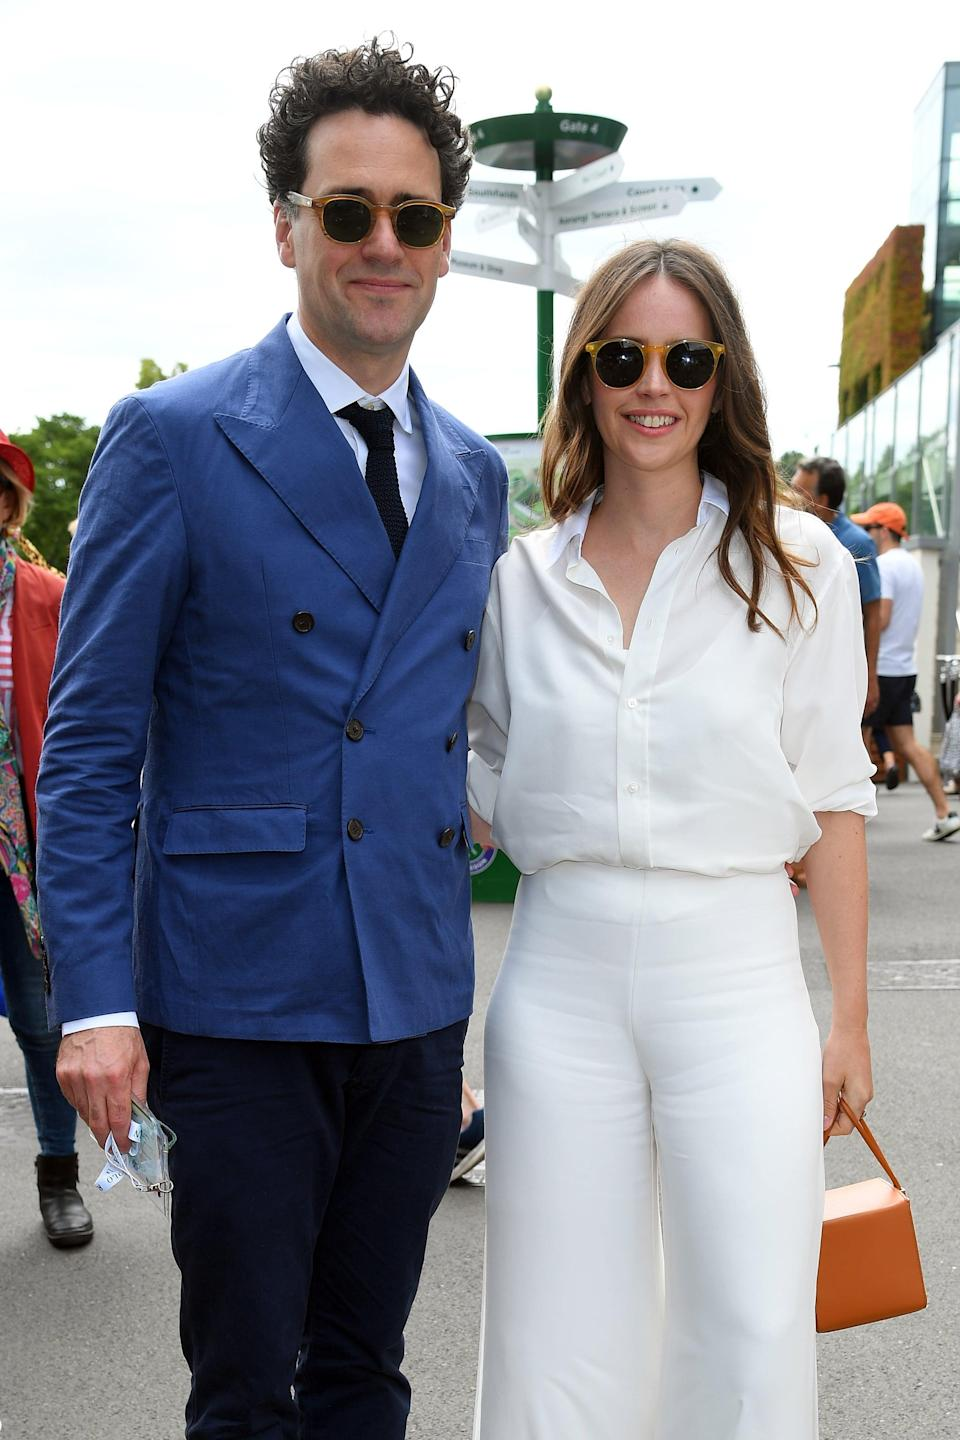 "<p>In December 2019, Felicity Jones and Charles Guard - who have been married since June 2018 - confirmed that they're expecting their first child after <strong>People</strong> <a href=""https://people.com/parents/felicity-jones-pregnant-with-first-child/"" class=""link rapid-noclick-resp"" rel=""nofollow noopener"" target=""_blank"" data-ylk=""slk:announced the exciting news"">announced the exciting news</a>.</p>"